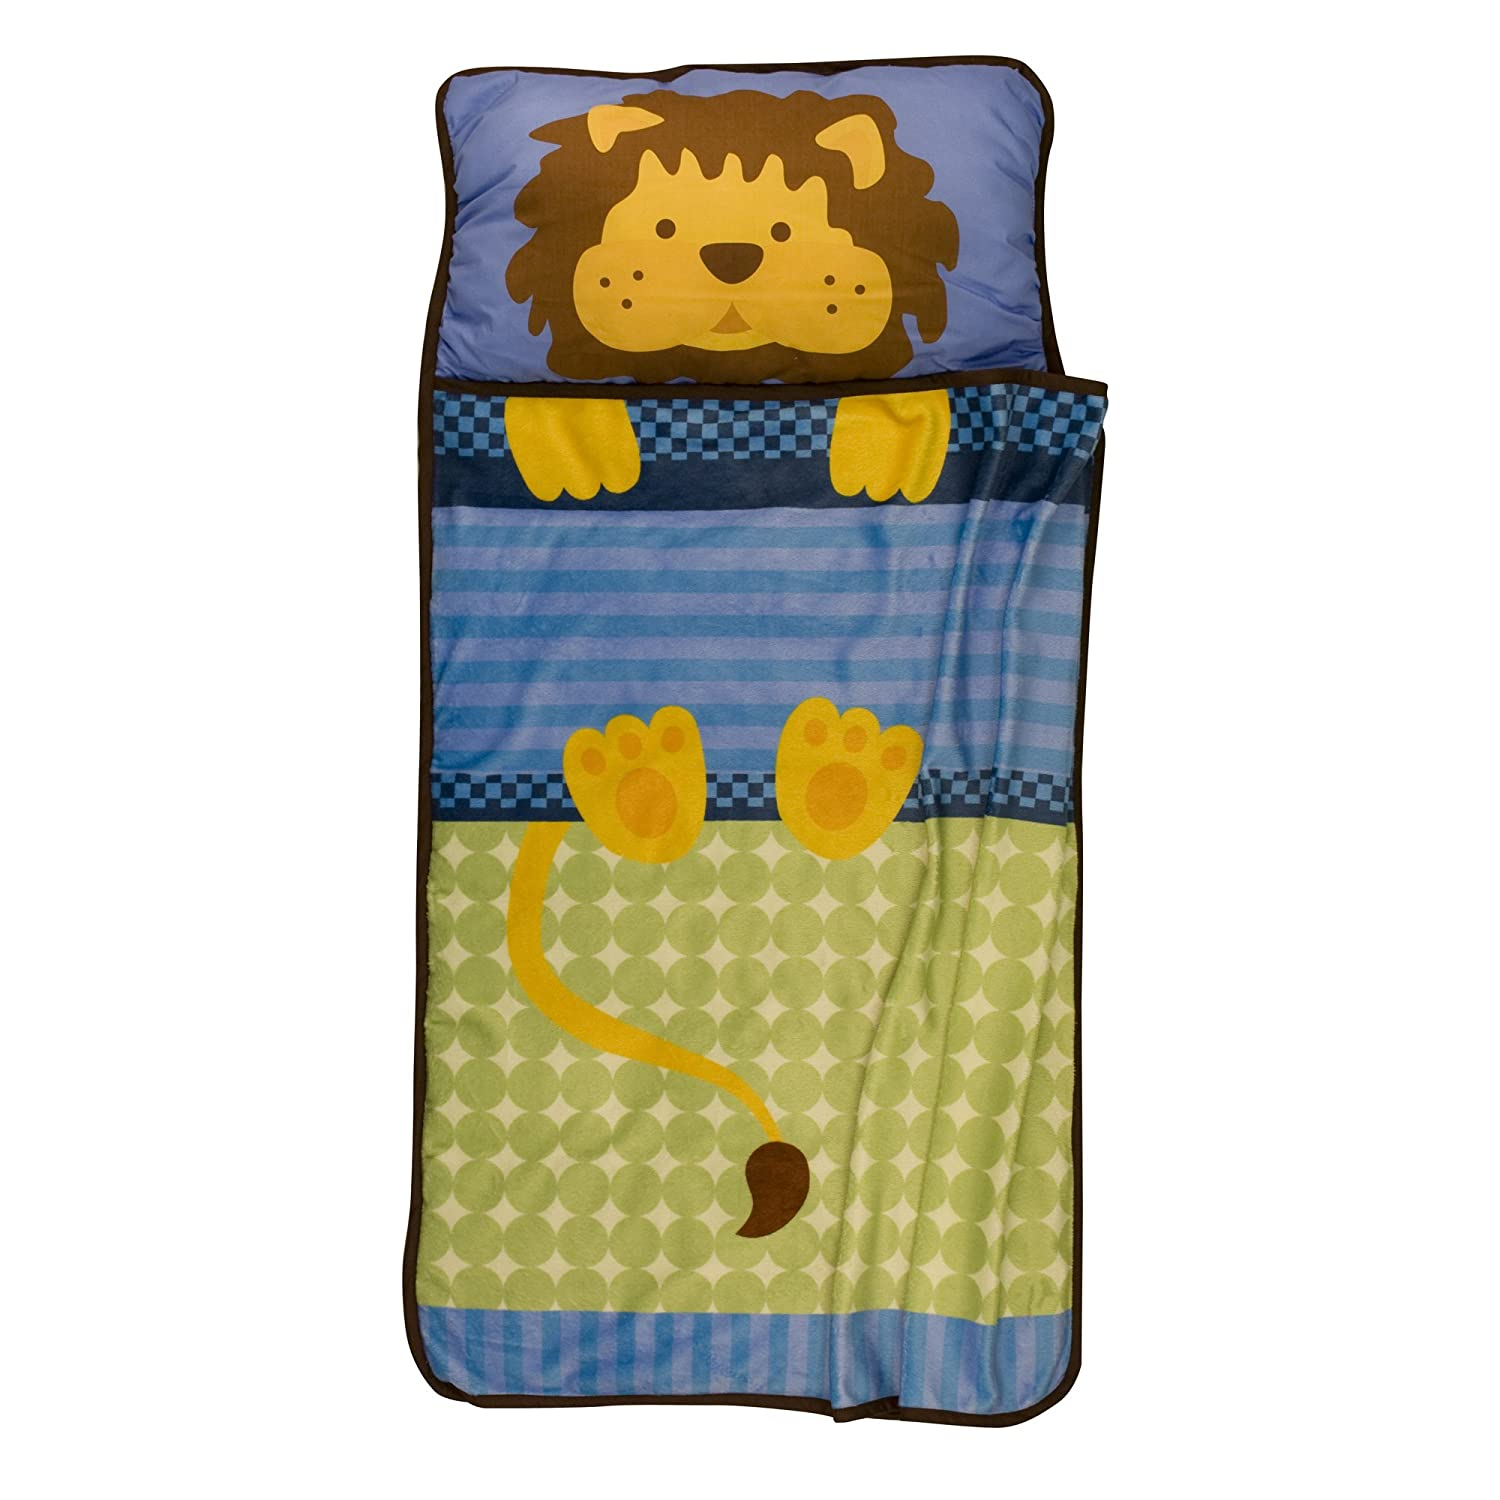 Diary of a wimpy kid collector s hello kitty folding chair adult - Lambs Ivy Nap Mat Lion